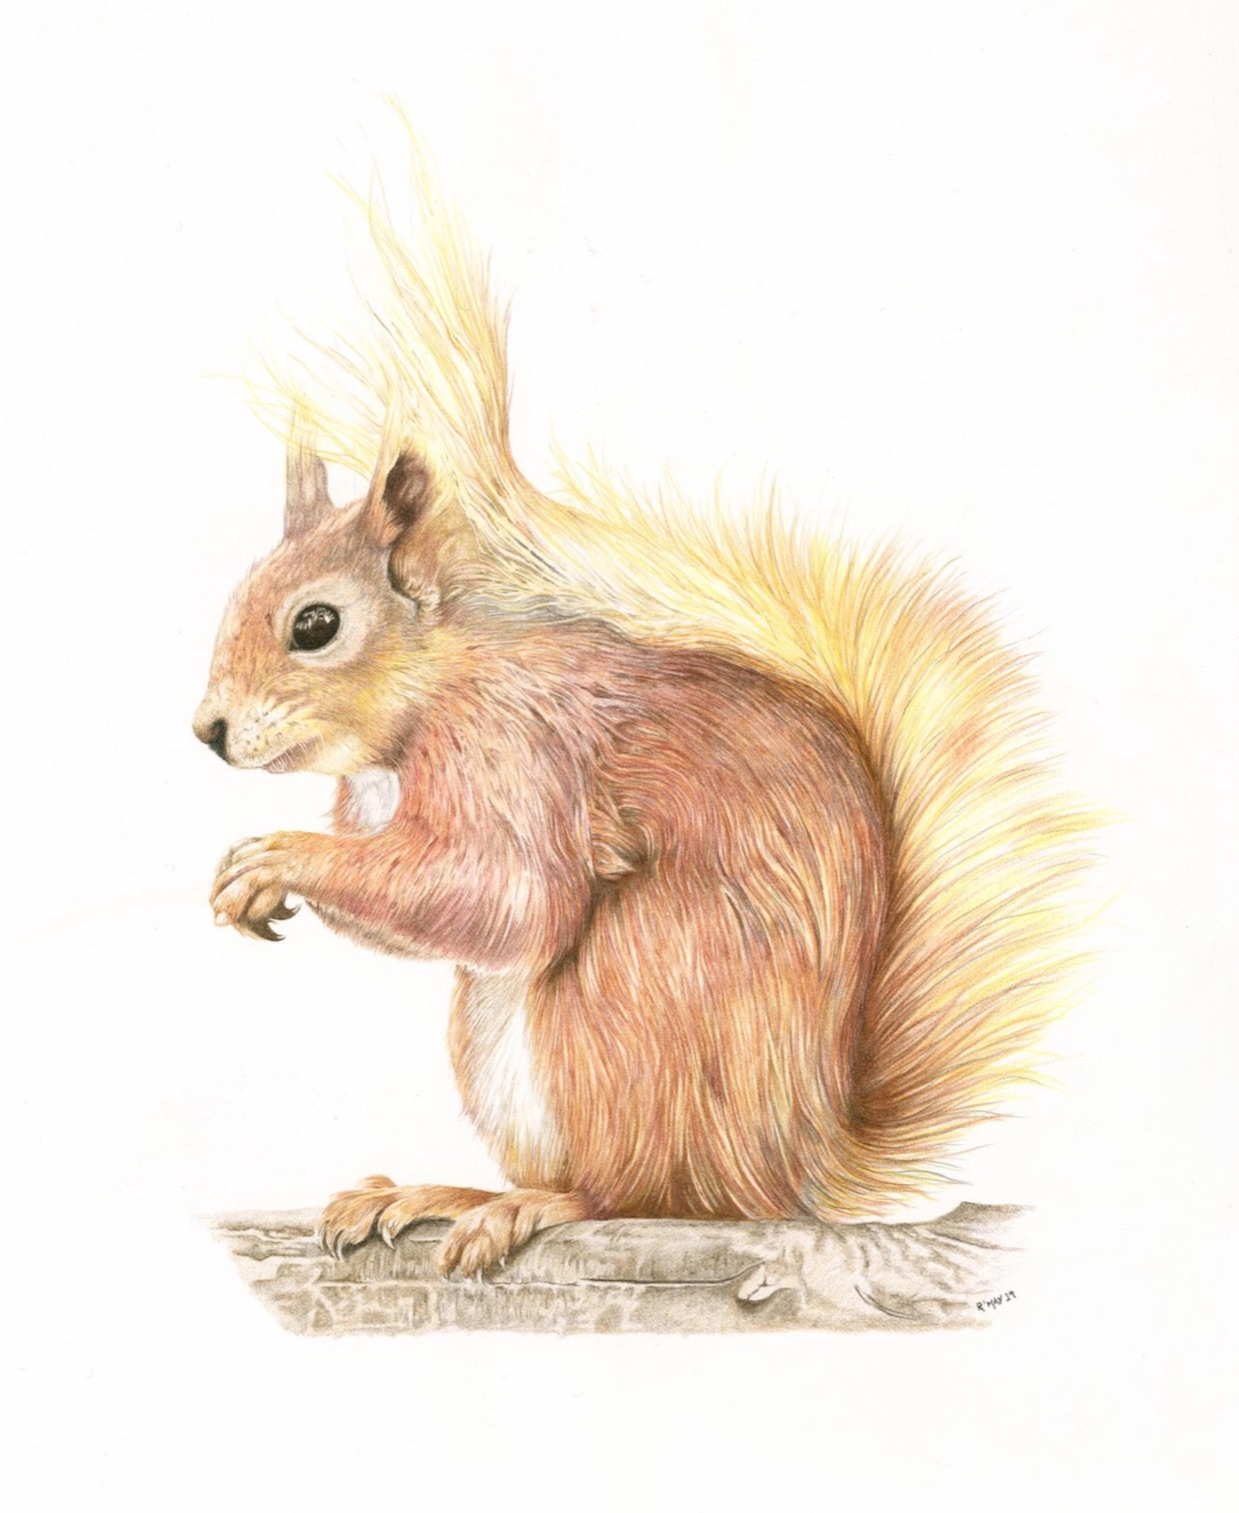 Red Squirrel Wildlife Art for sale